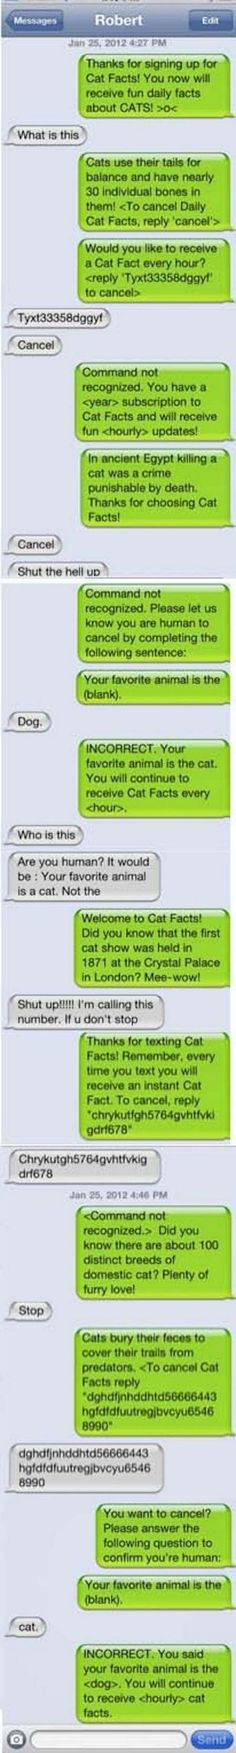 16 Funny Wrong Number Texts - Annoying cat facts!